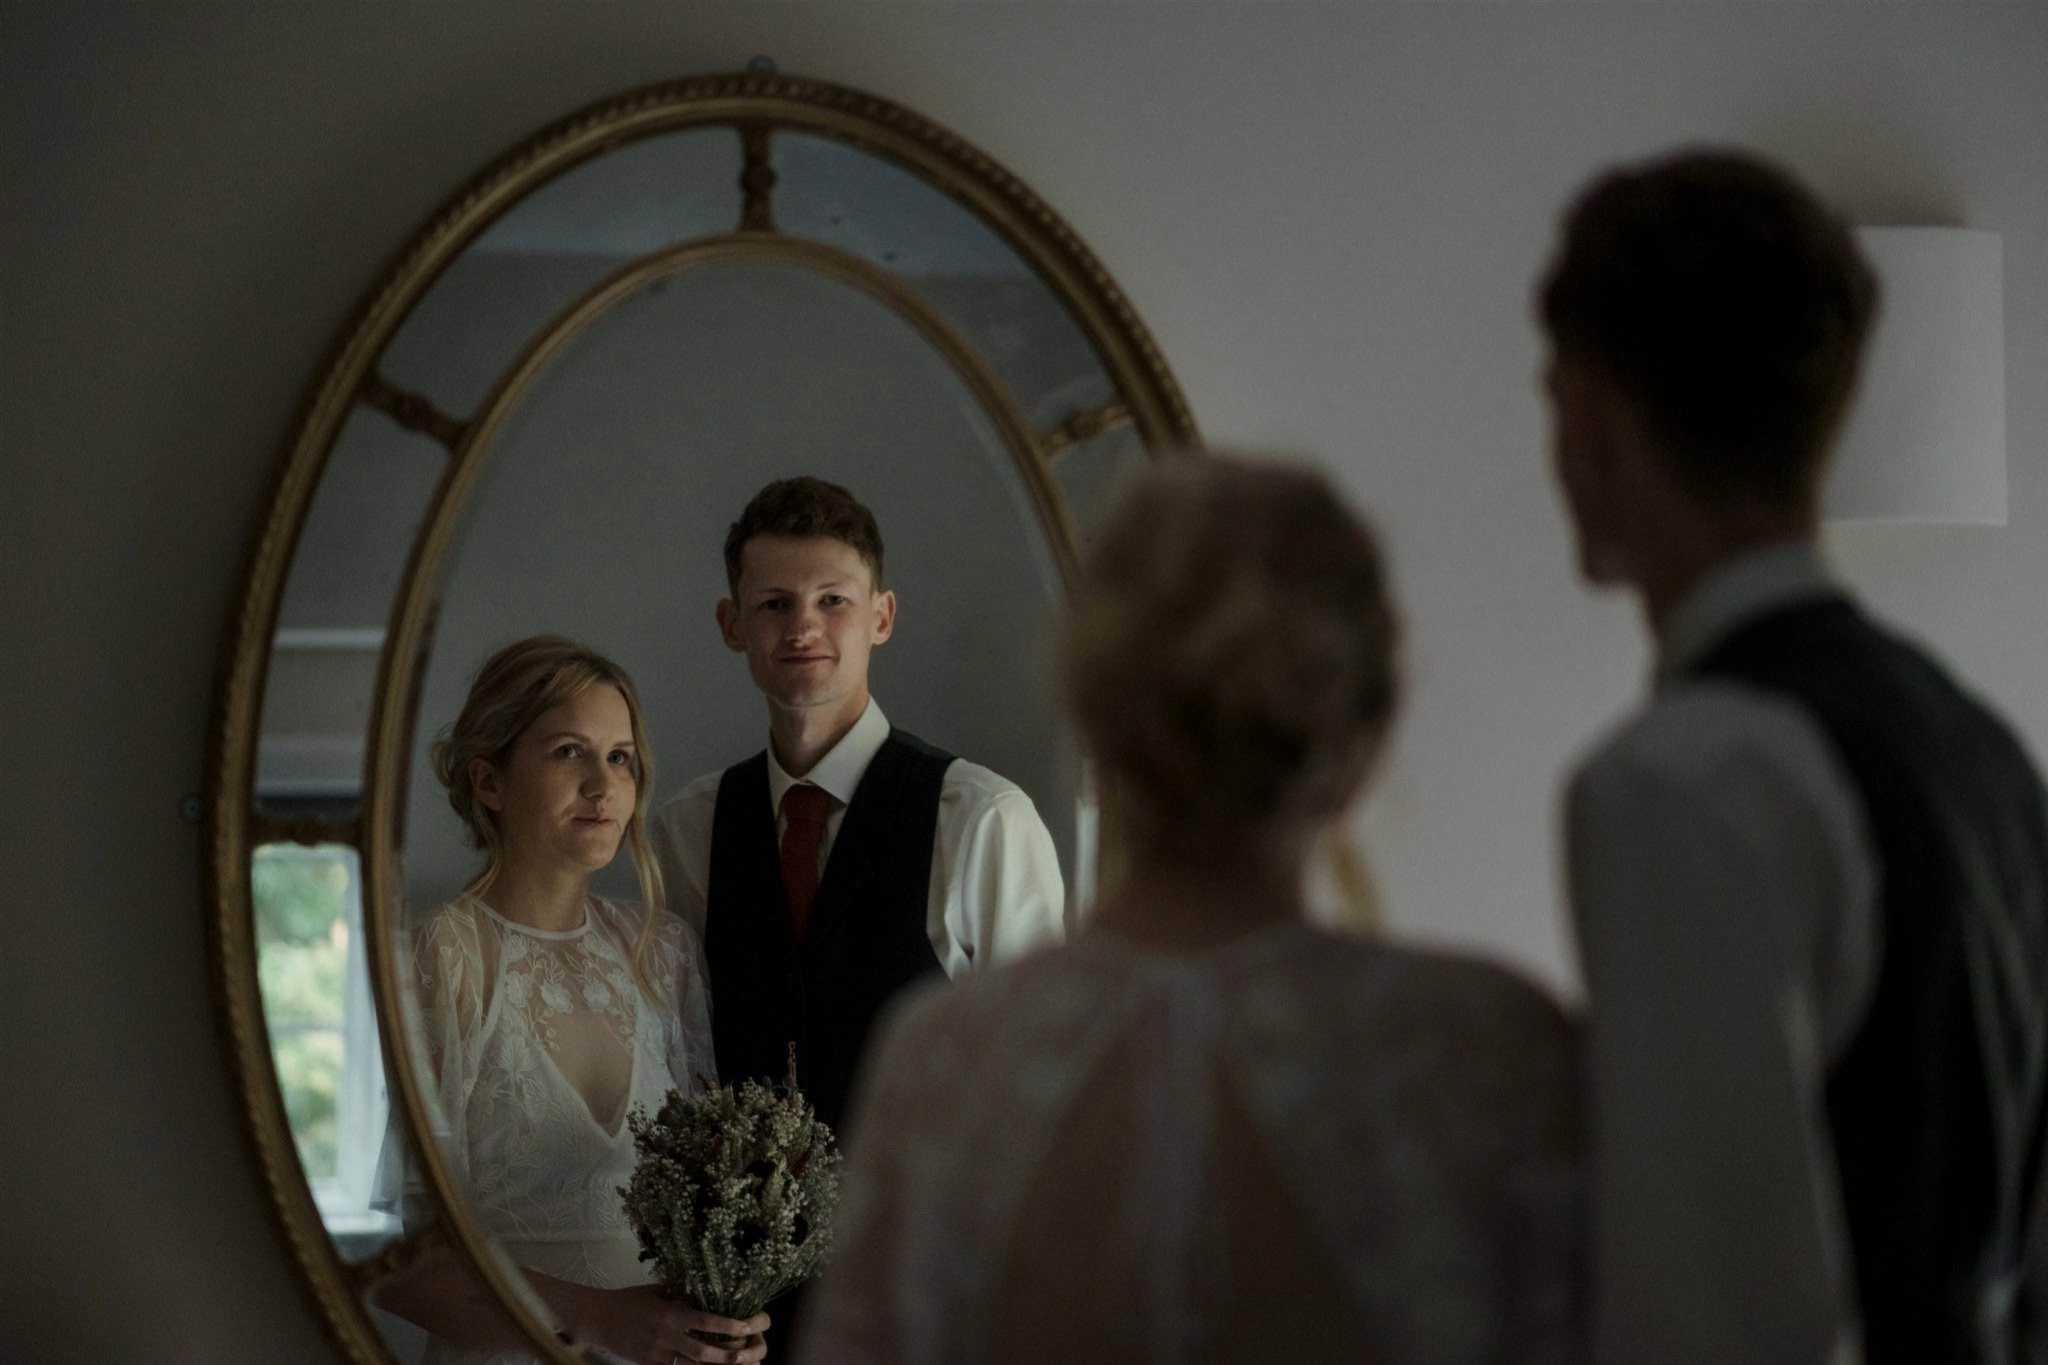 Bride and groom looking in mirror during their wedding for two in Scotland